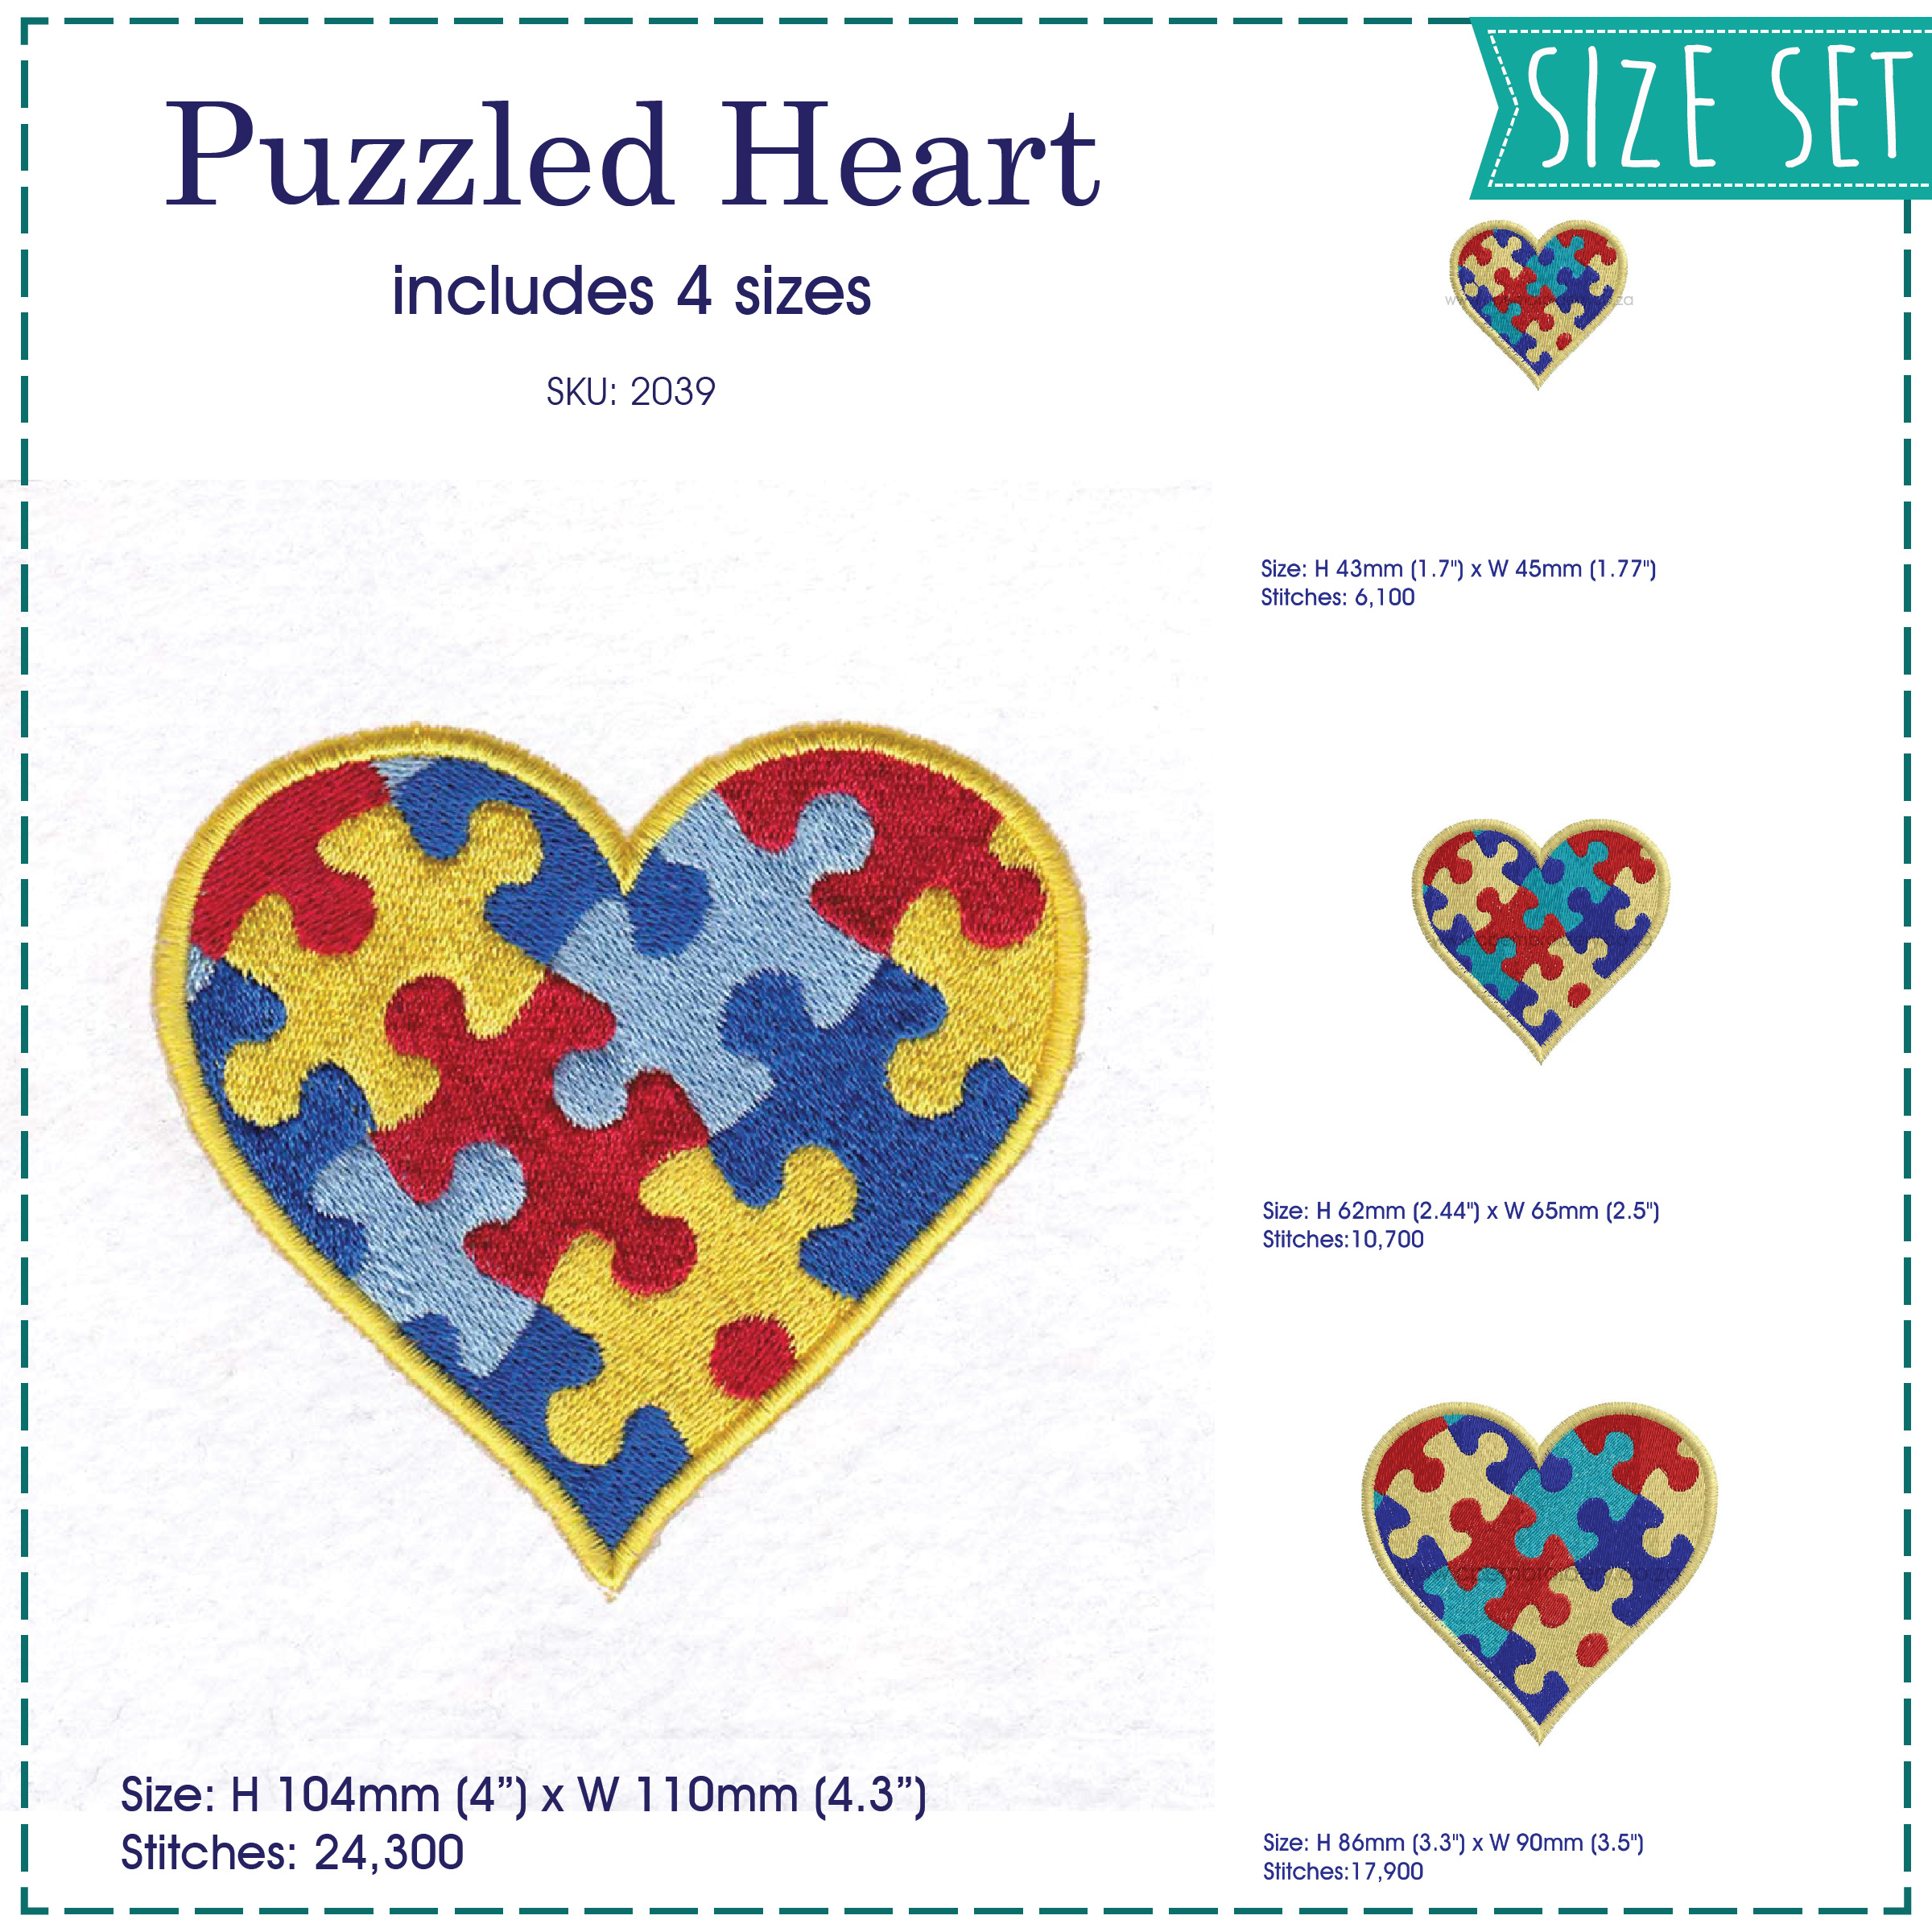 colored colorful puzzle detail puzzled heart embroidery design support autism awareness set pack sizes